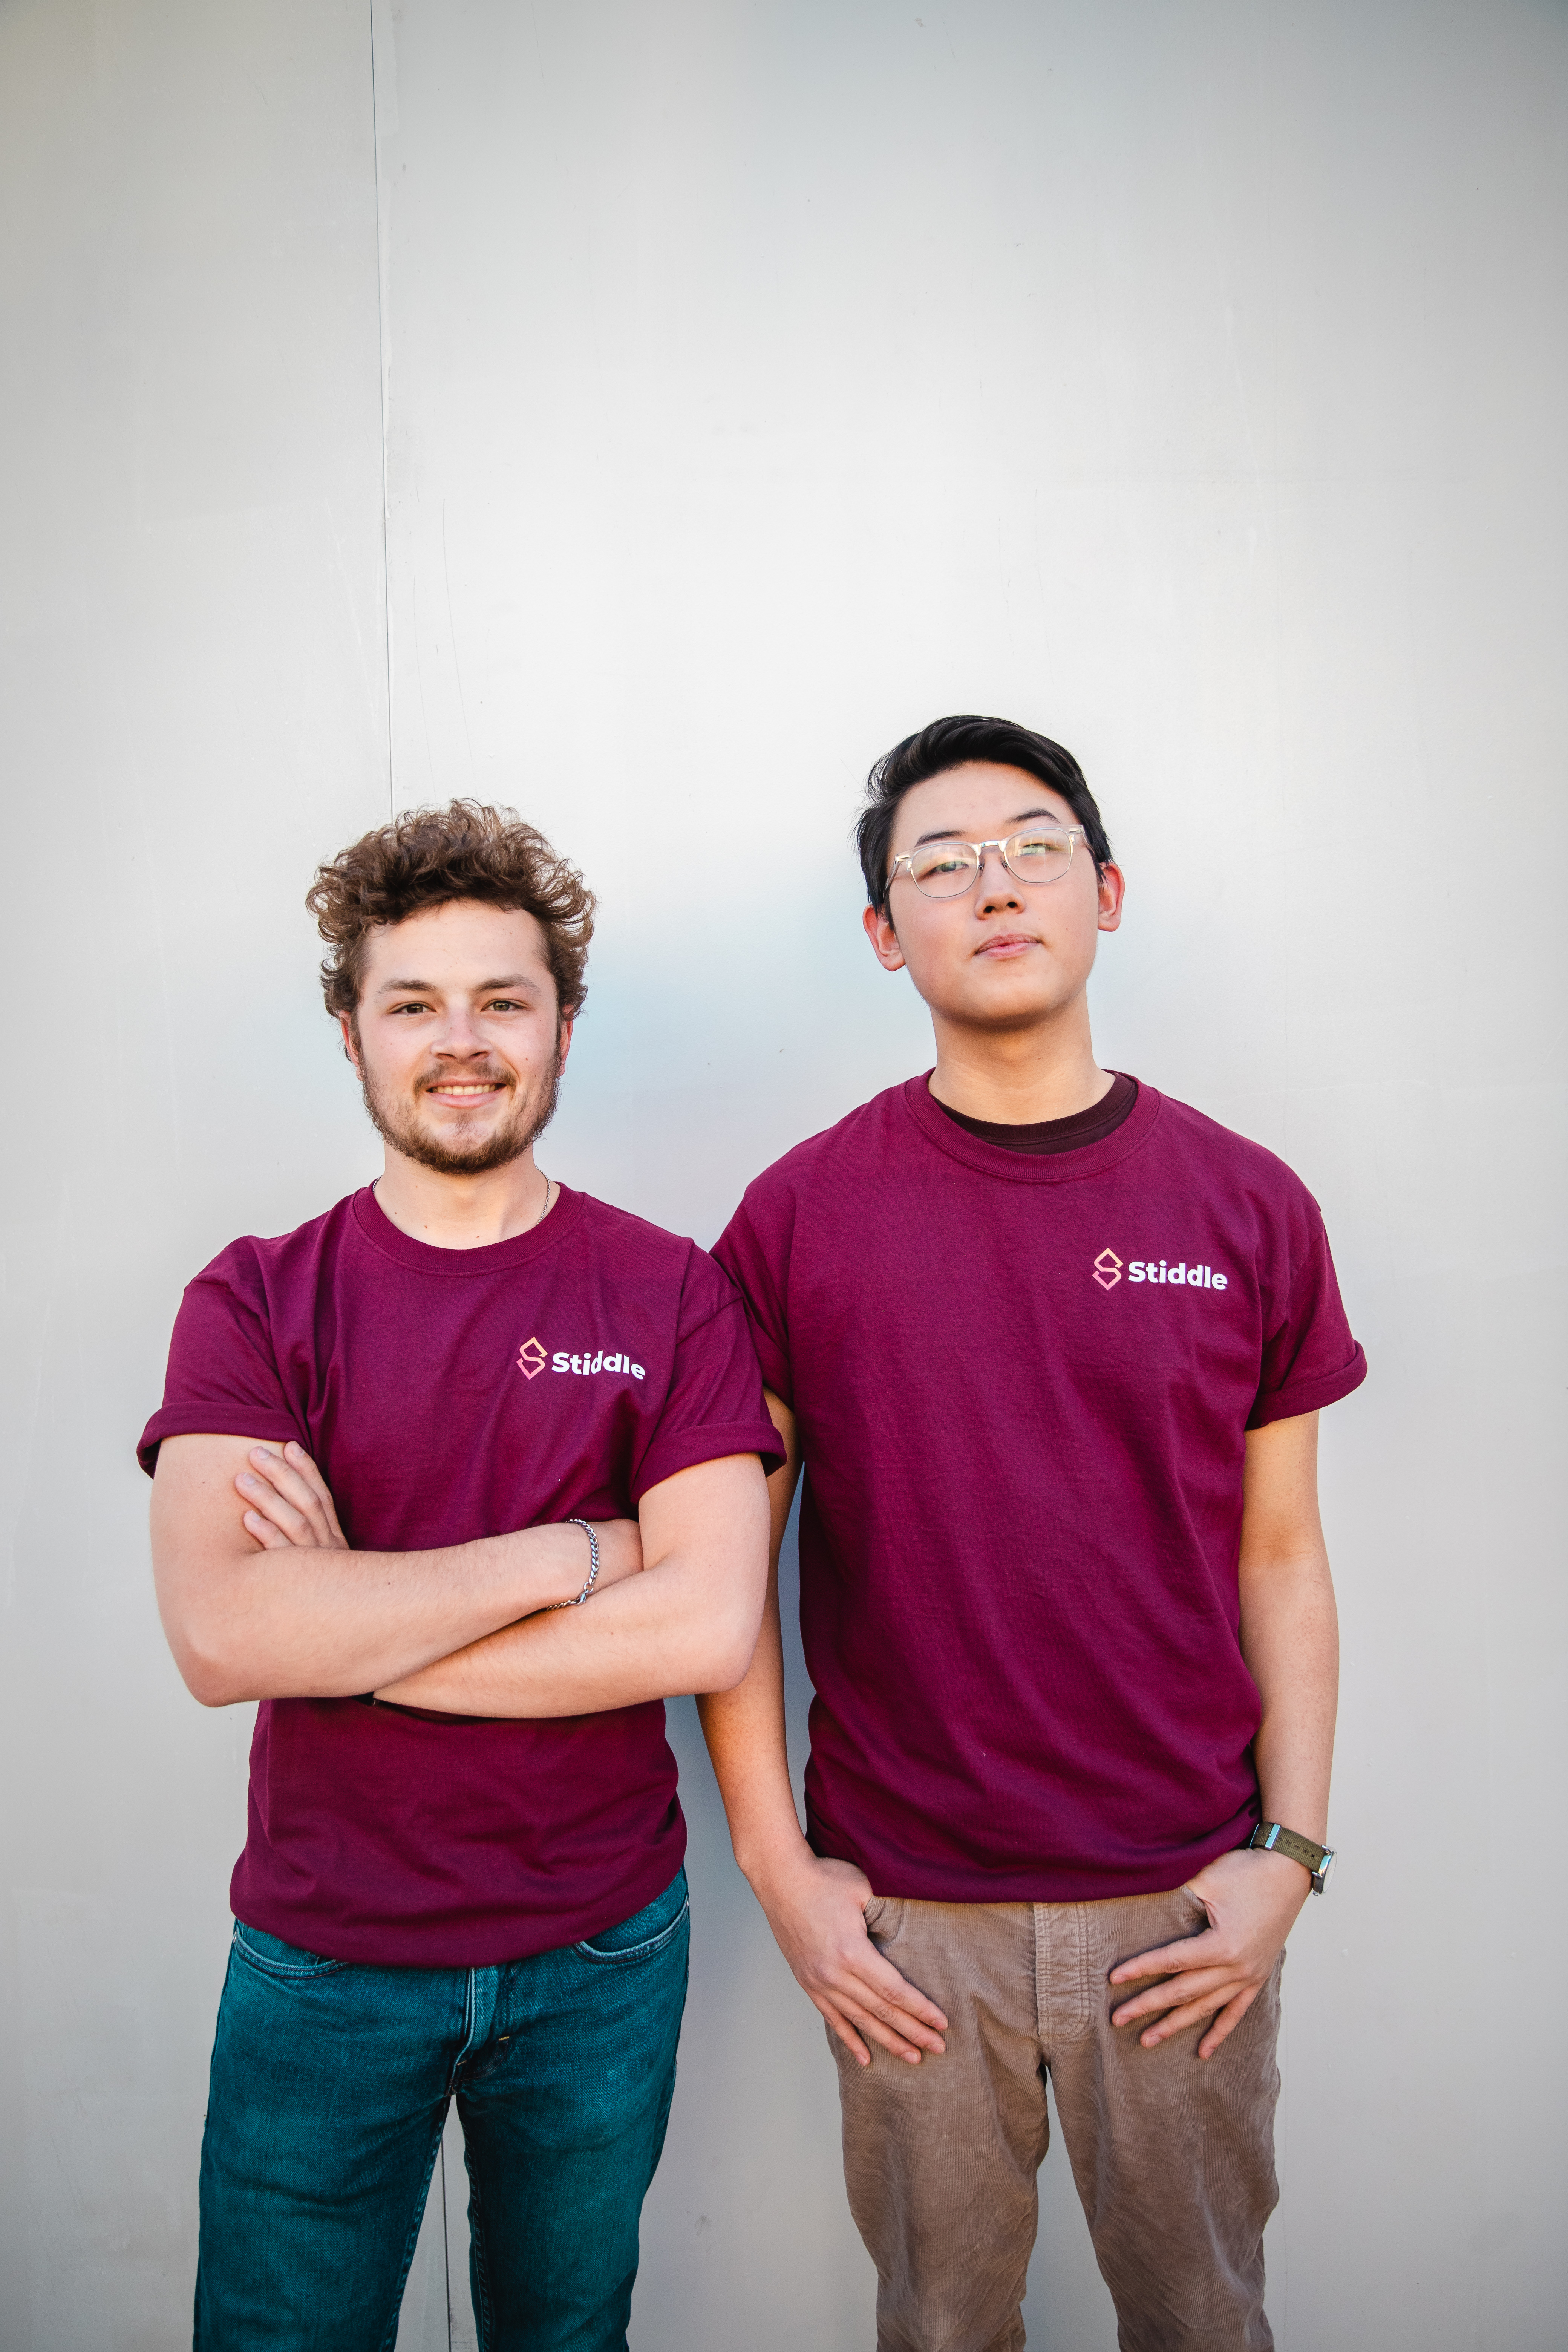 James Bender & Charis Zhang, 17-year-old Co-founders of Stiddle are ready to help businesses recover from the COVID-19 pandemic with their AI-advertising platform